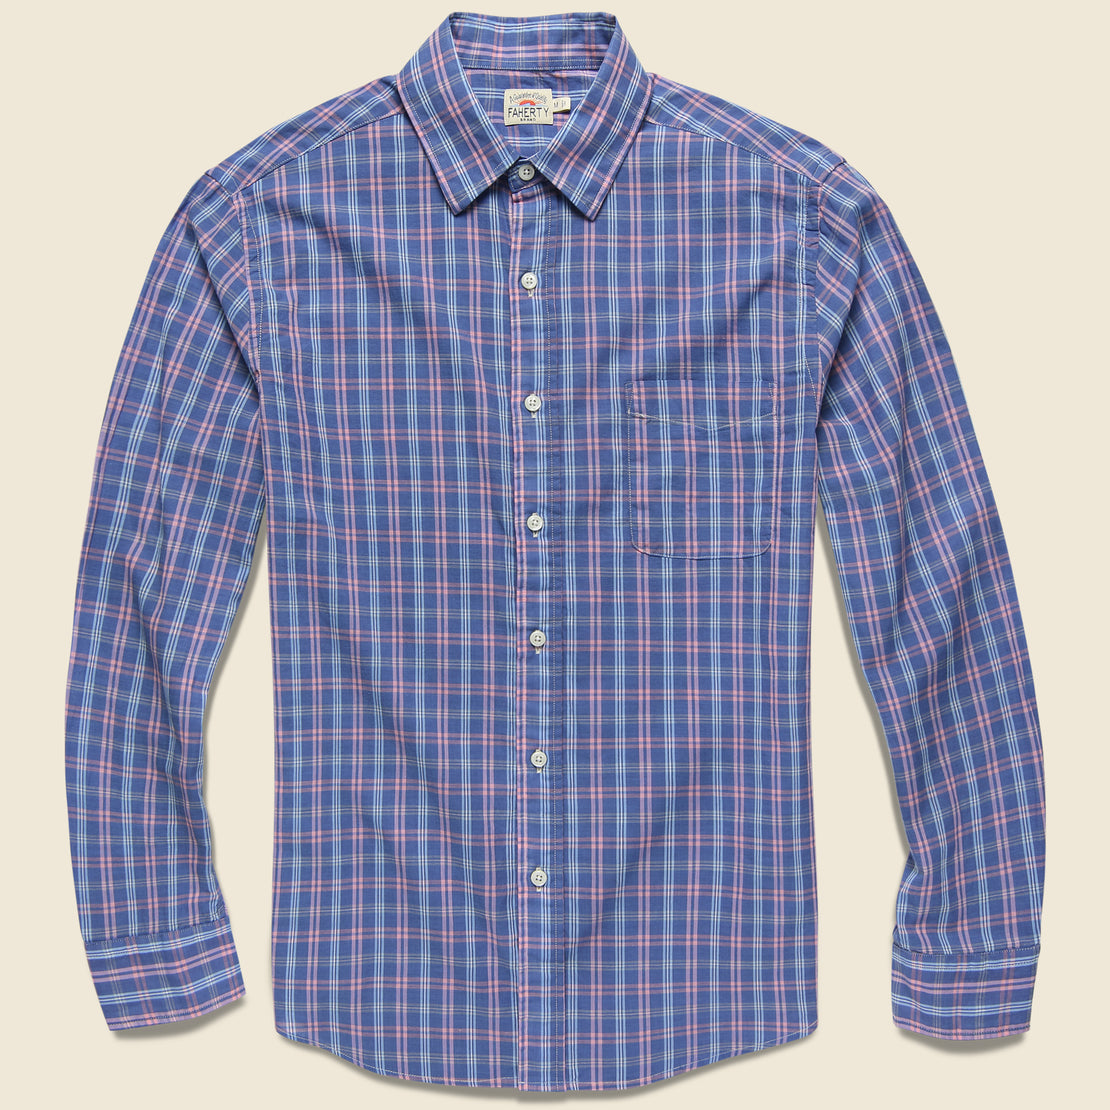 Faherty Ventura Shirt - Chambray Blue Plaid